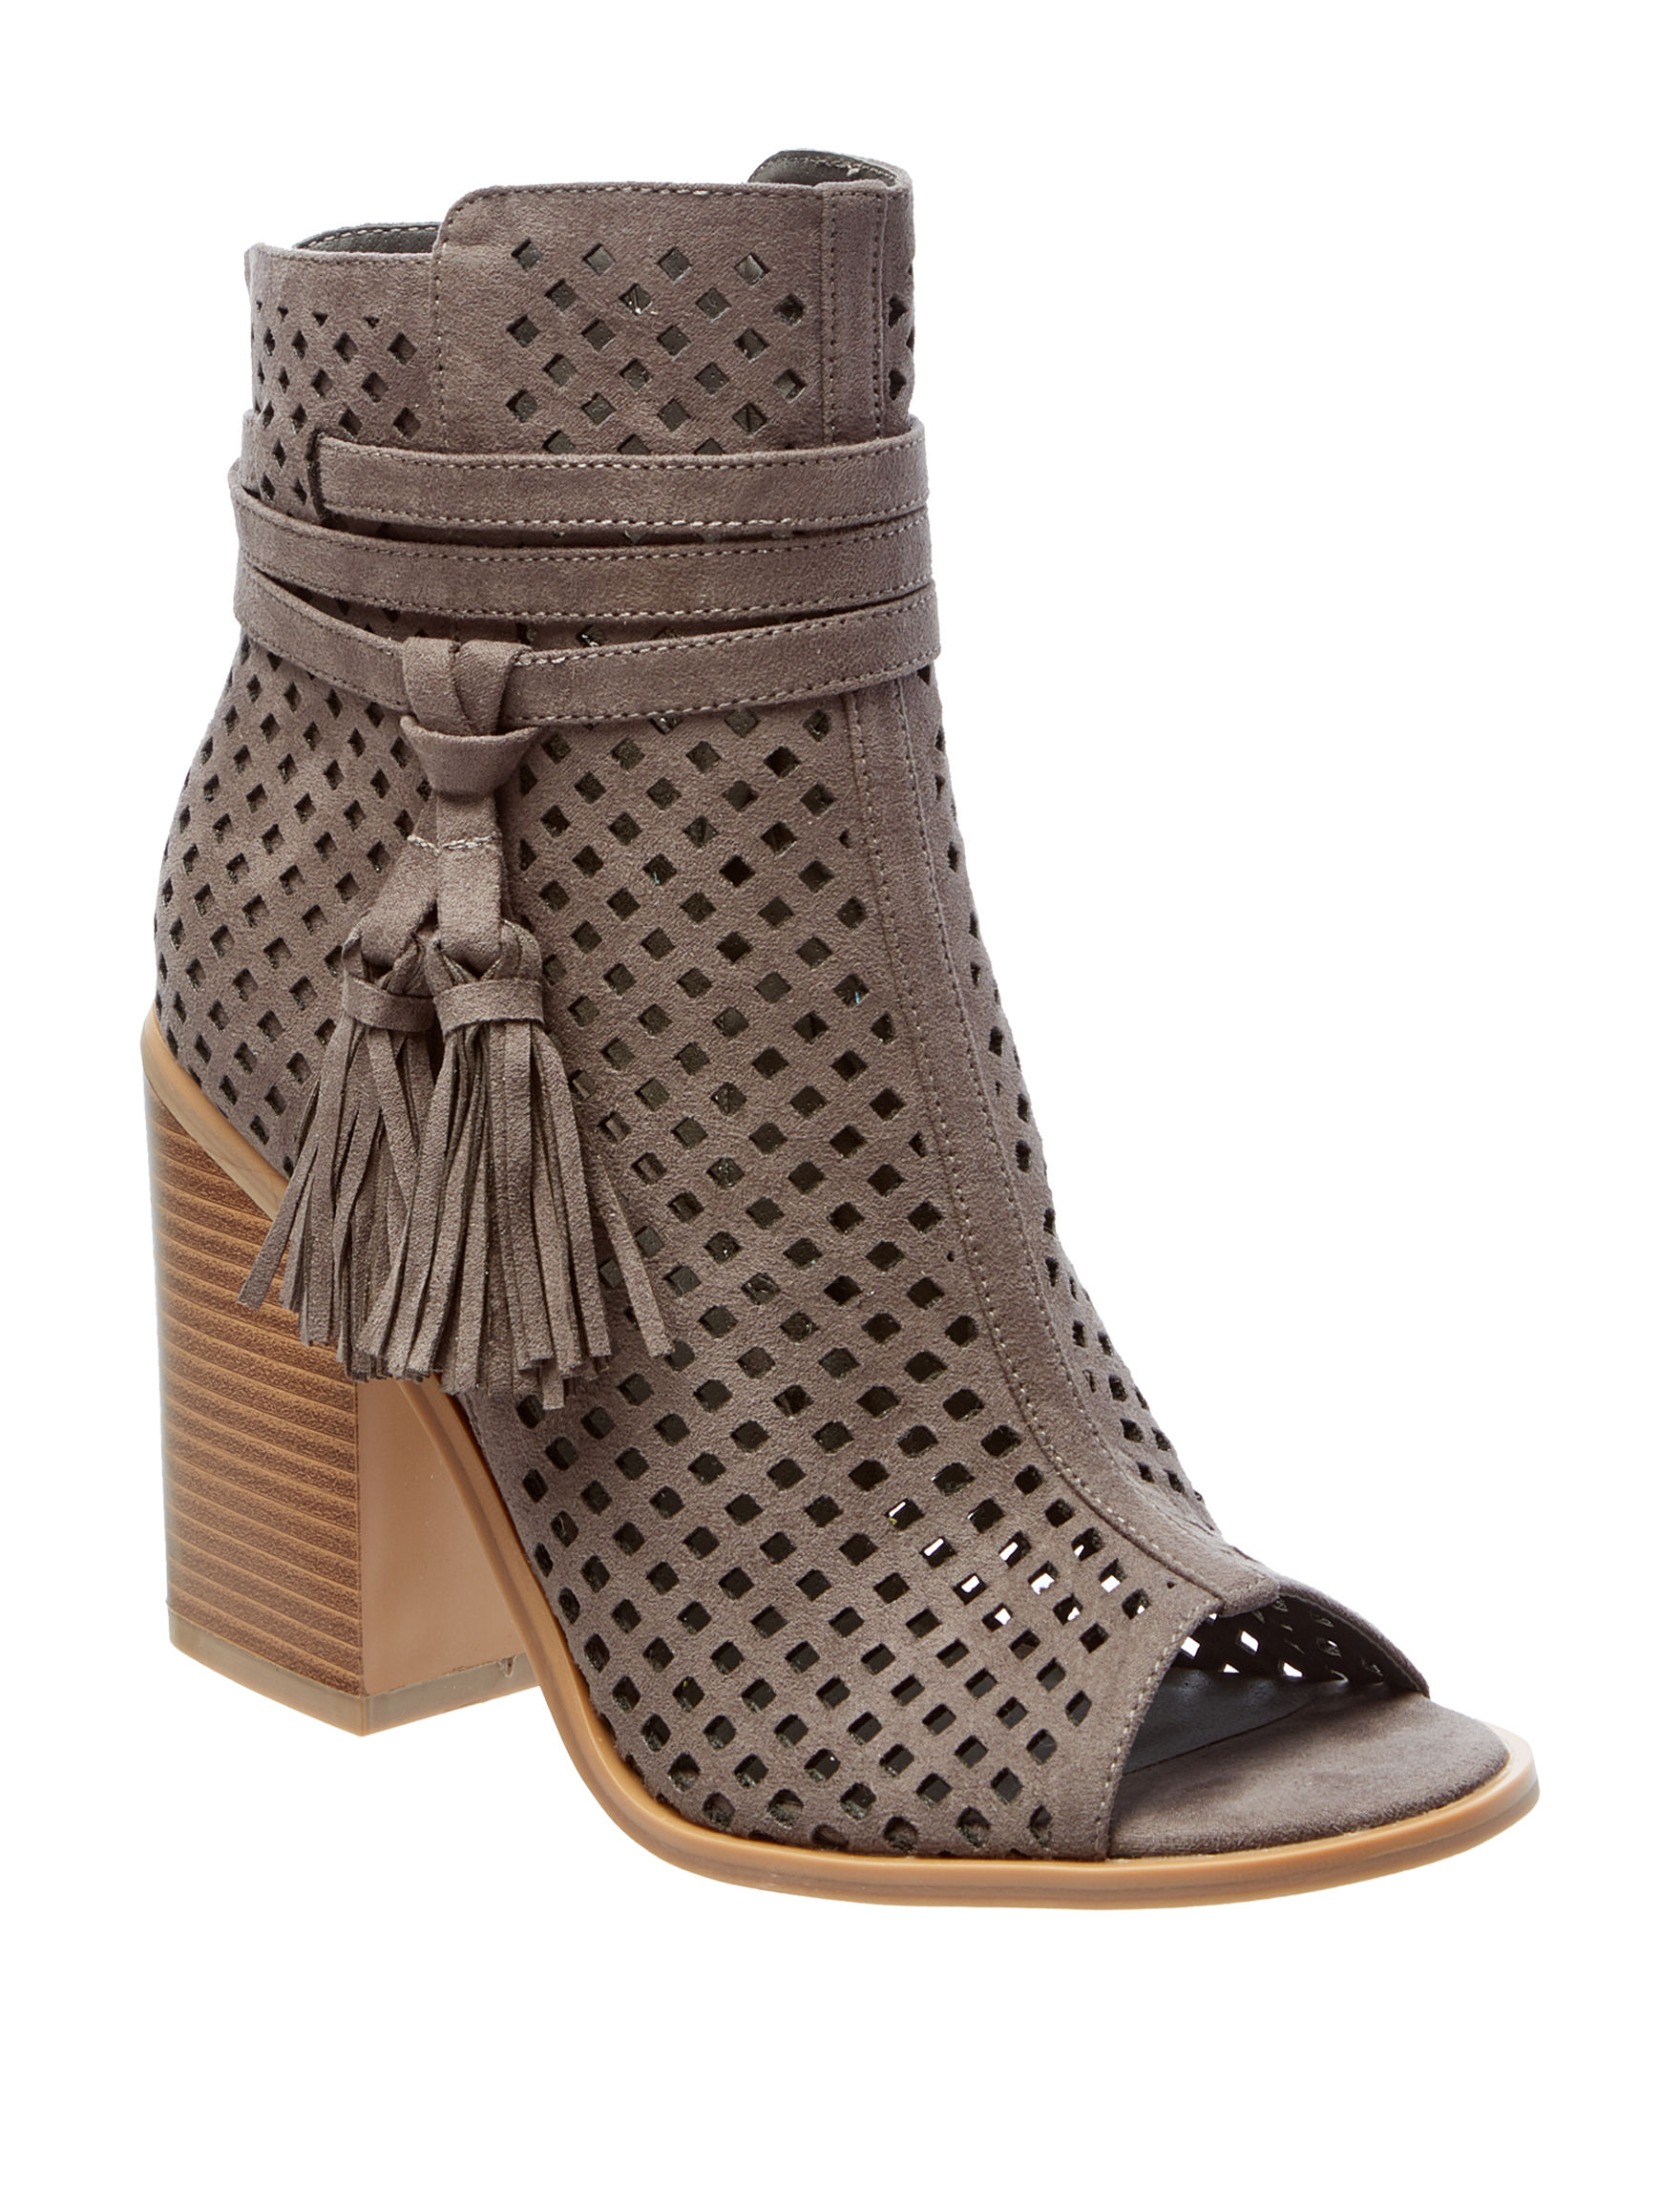 London Rag Charcoal Ankle Boots & Booties Peep Toe